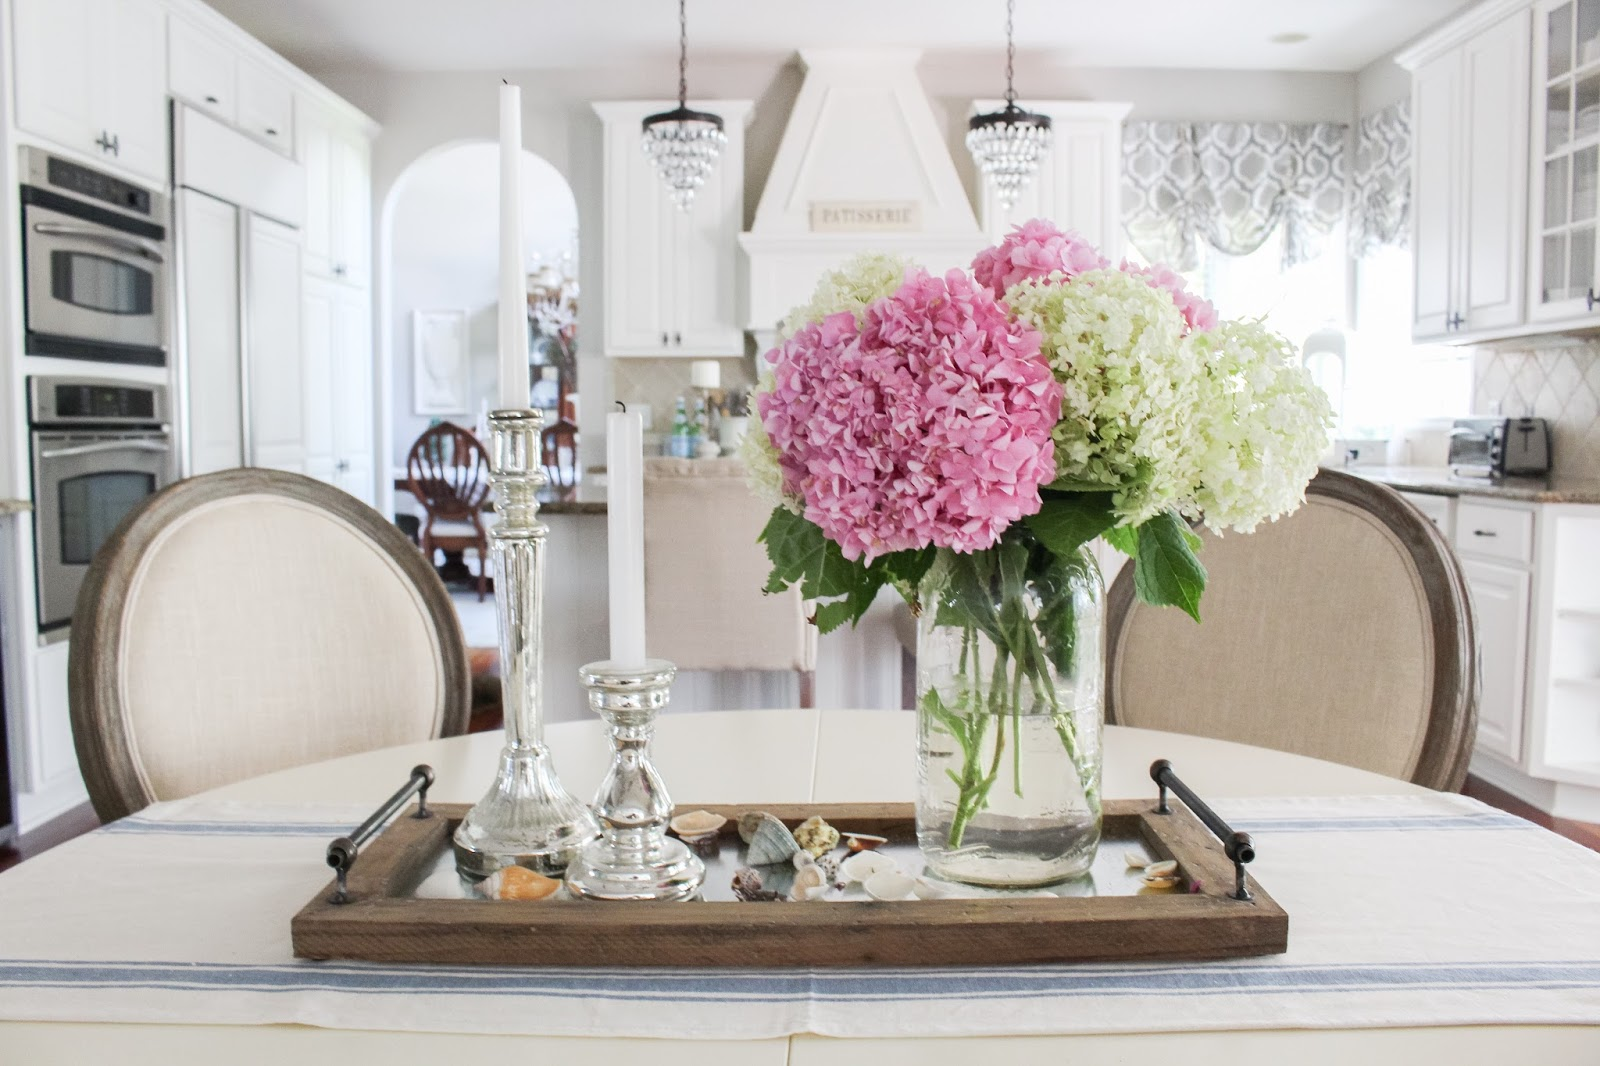 Grouping Several Mason Jars With A Couple Hydrangeas In Each Jar Make For Perfect Summer Centerpiece On Kitchen Island